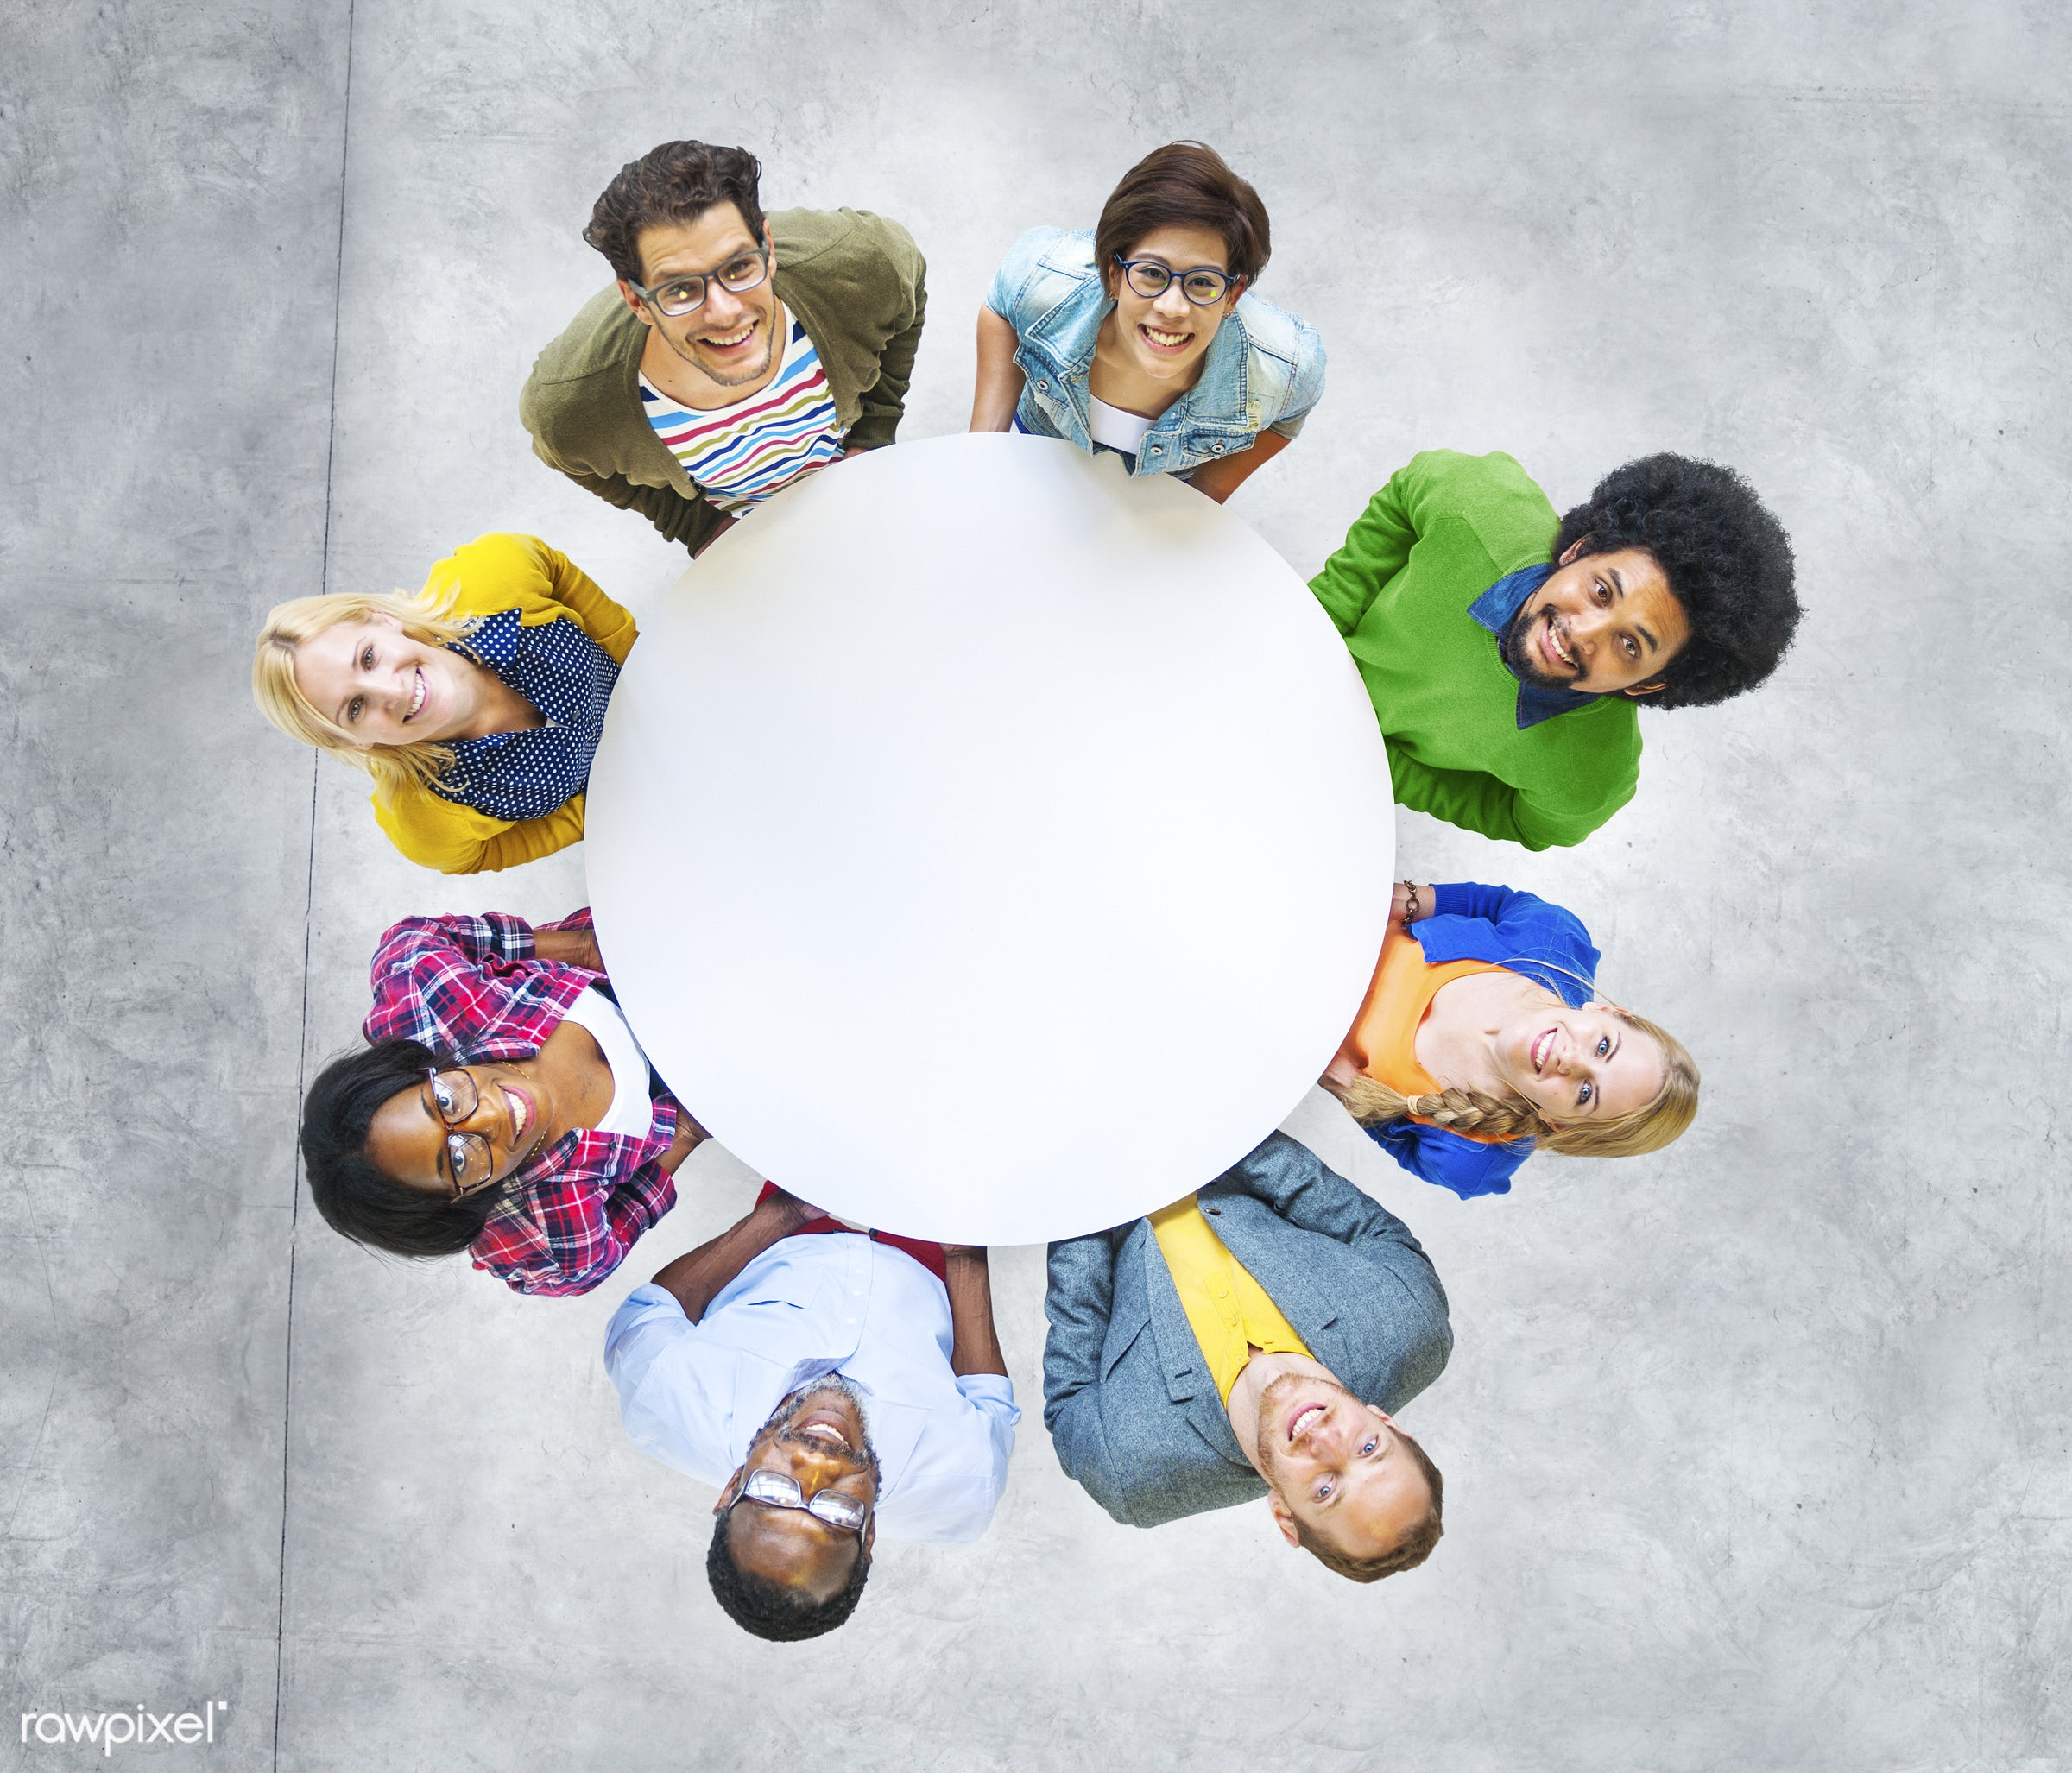 aerial view, african descent, asian ethnicity, casual, cement, cement floor, cheerful, circle, colourful, community,...